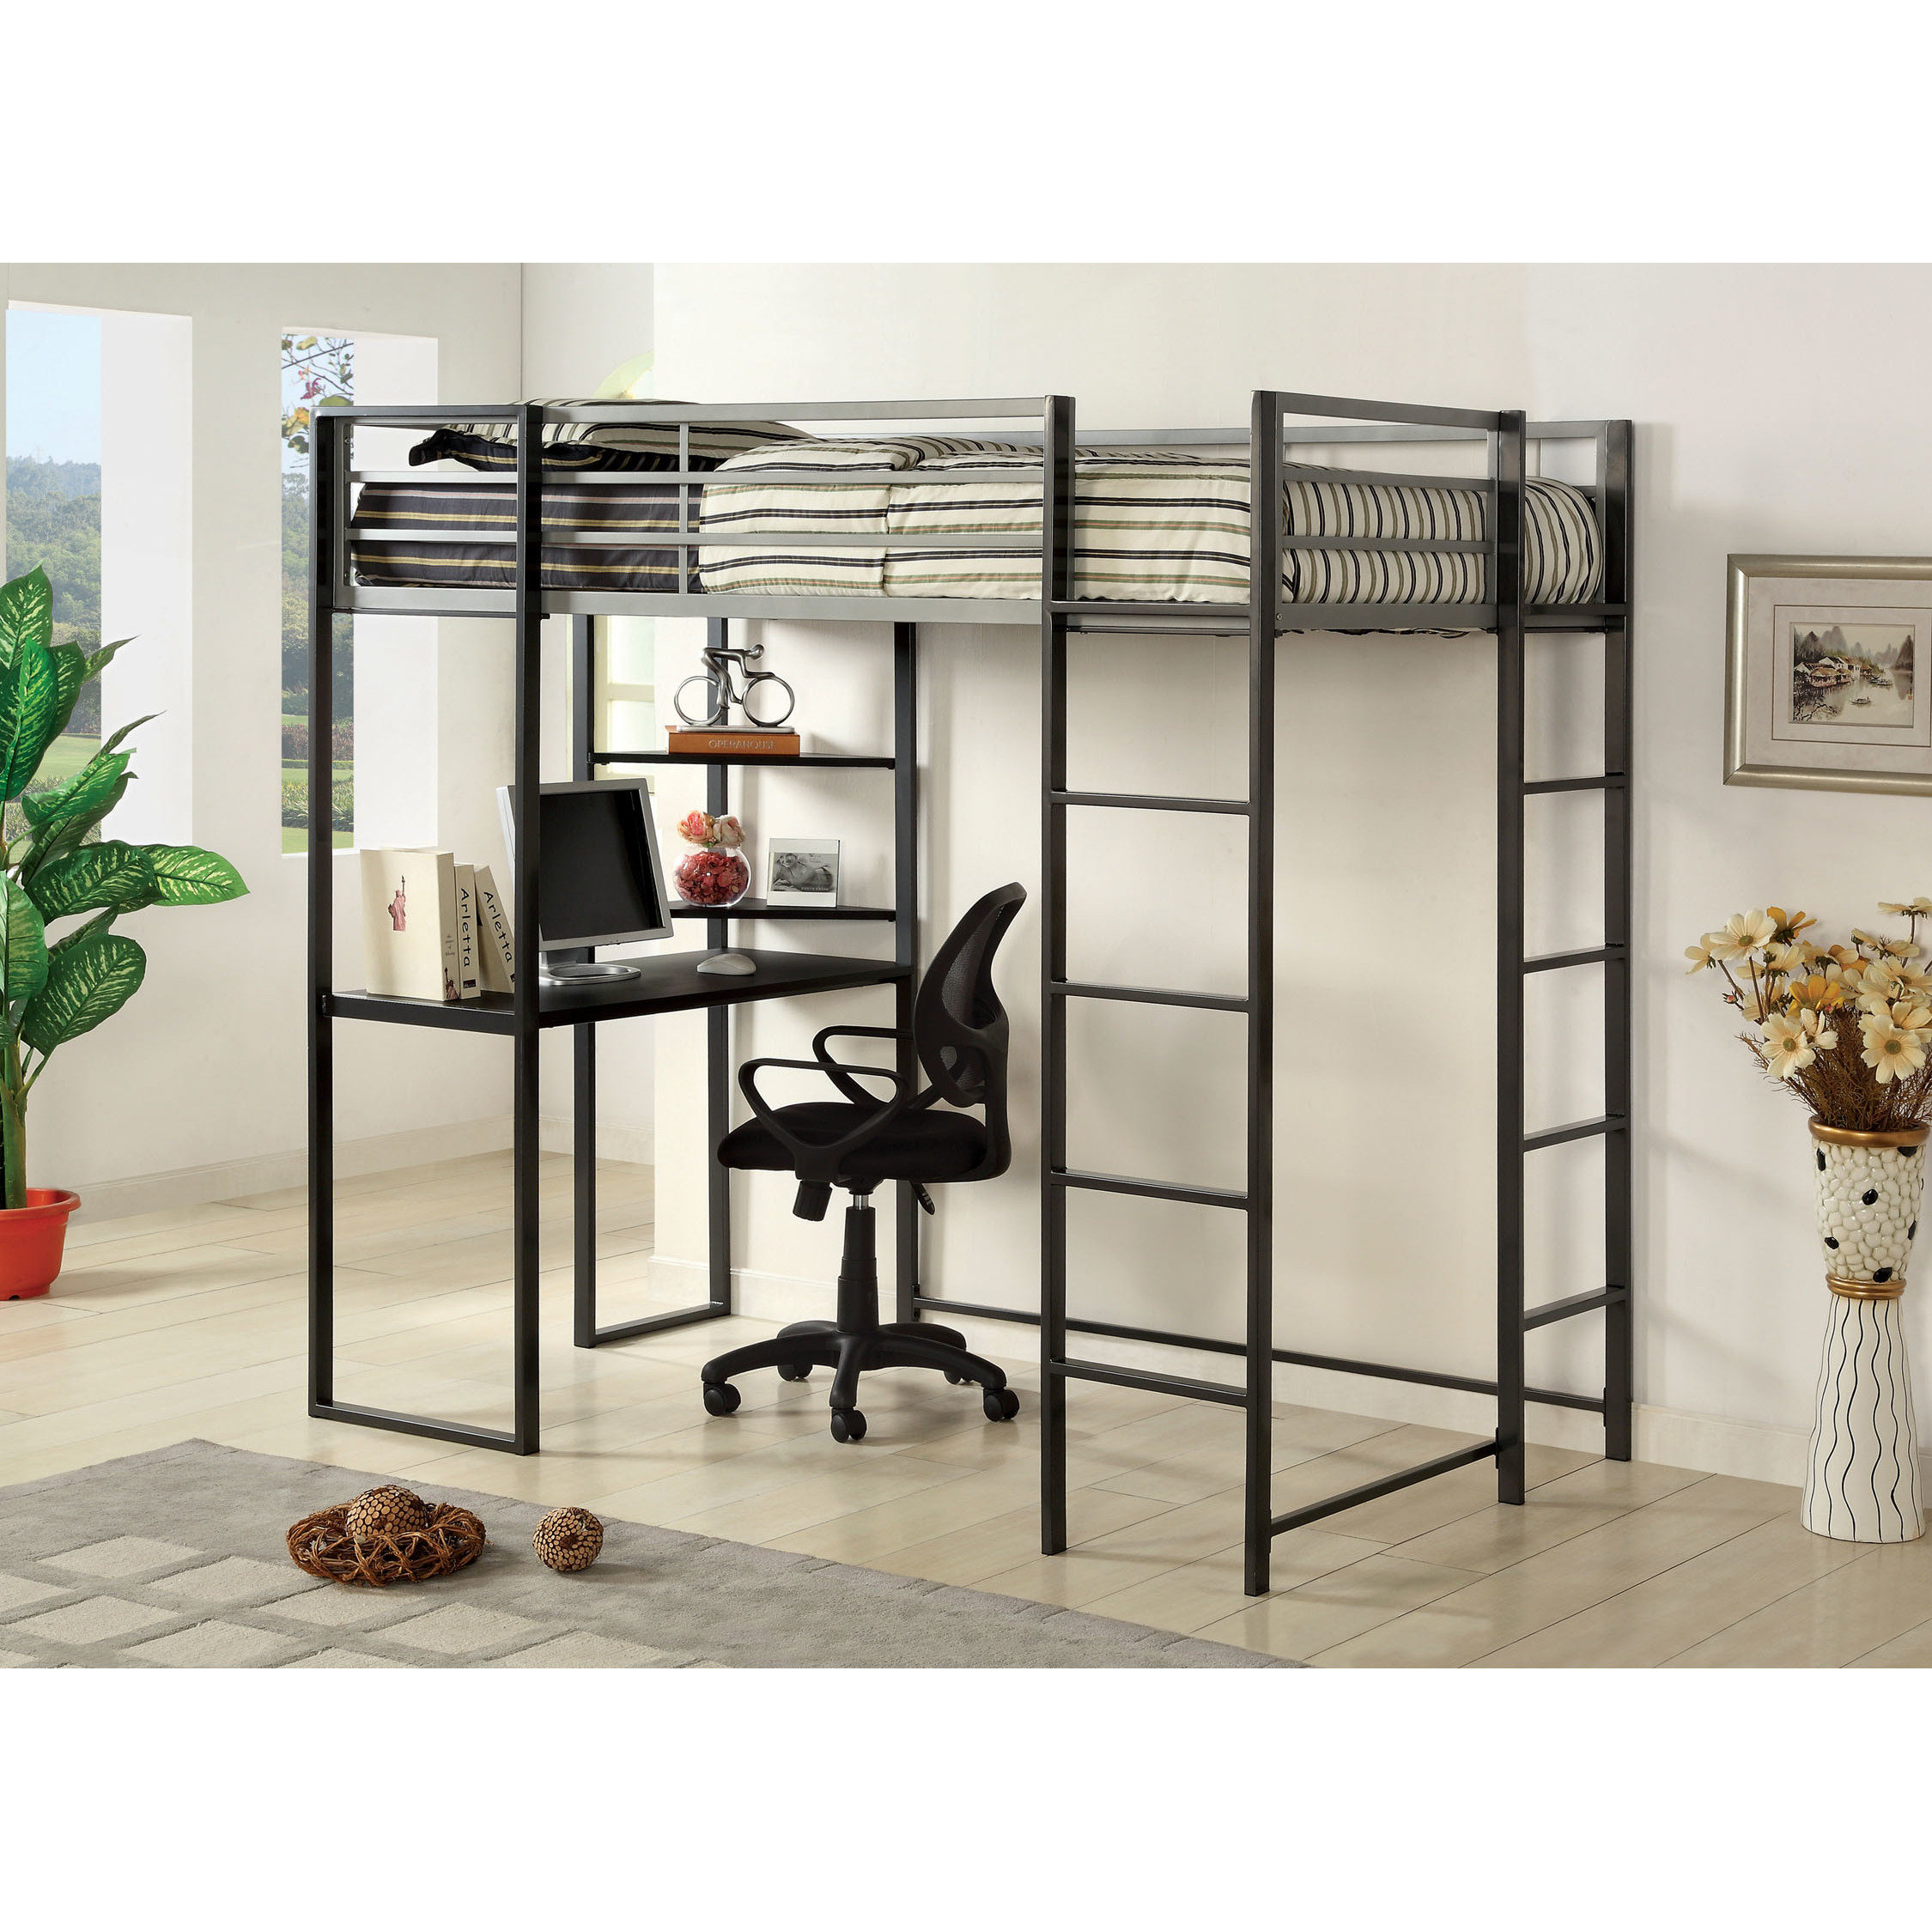 Entrancing Canwood Whistler Storage Loft Bed with Desk Bundle | Fancy Canwood Loft Bed Styles